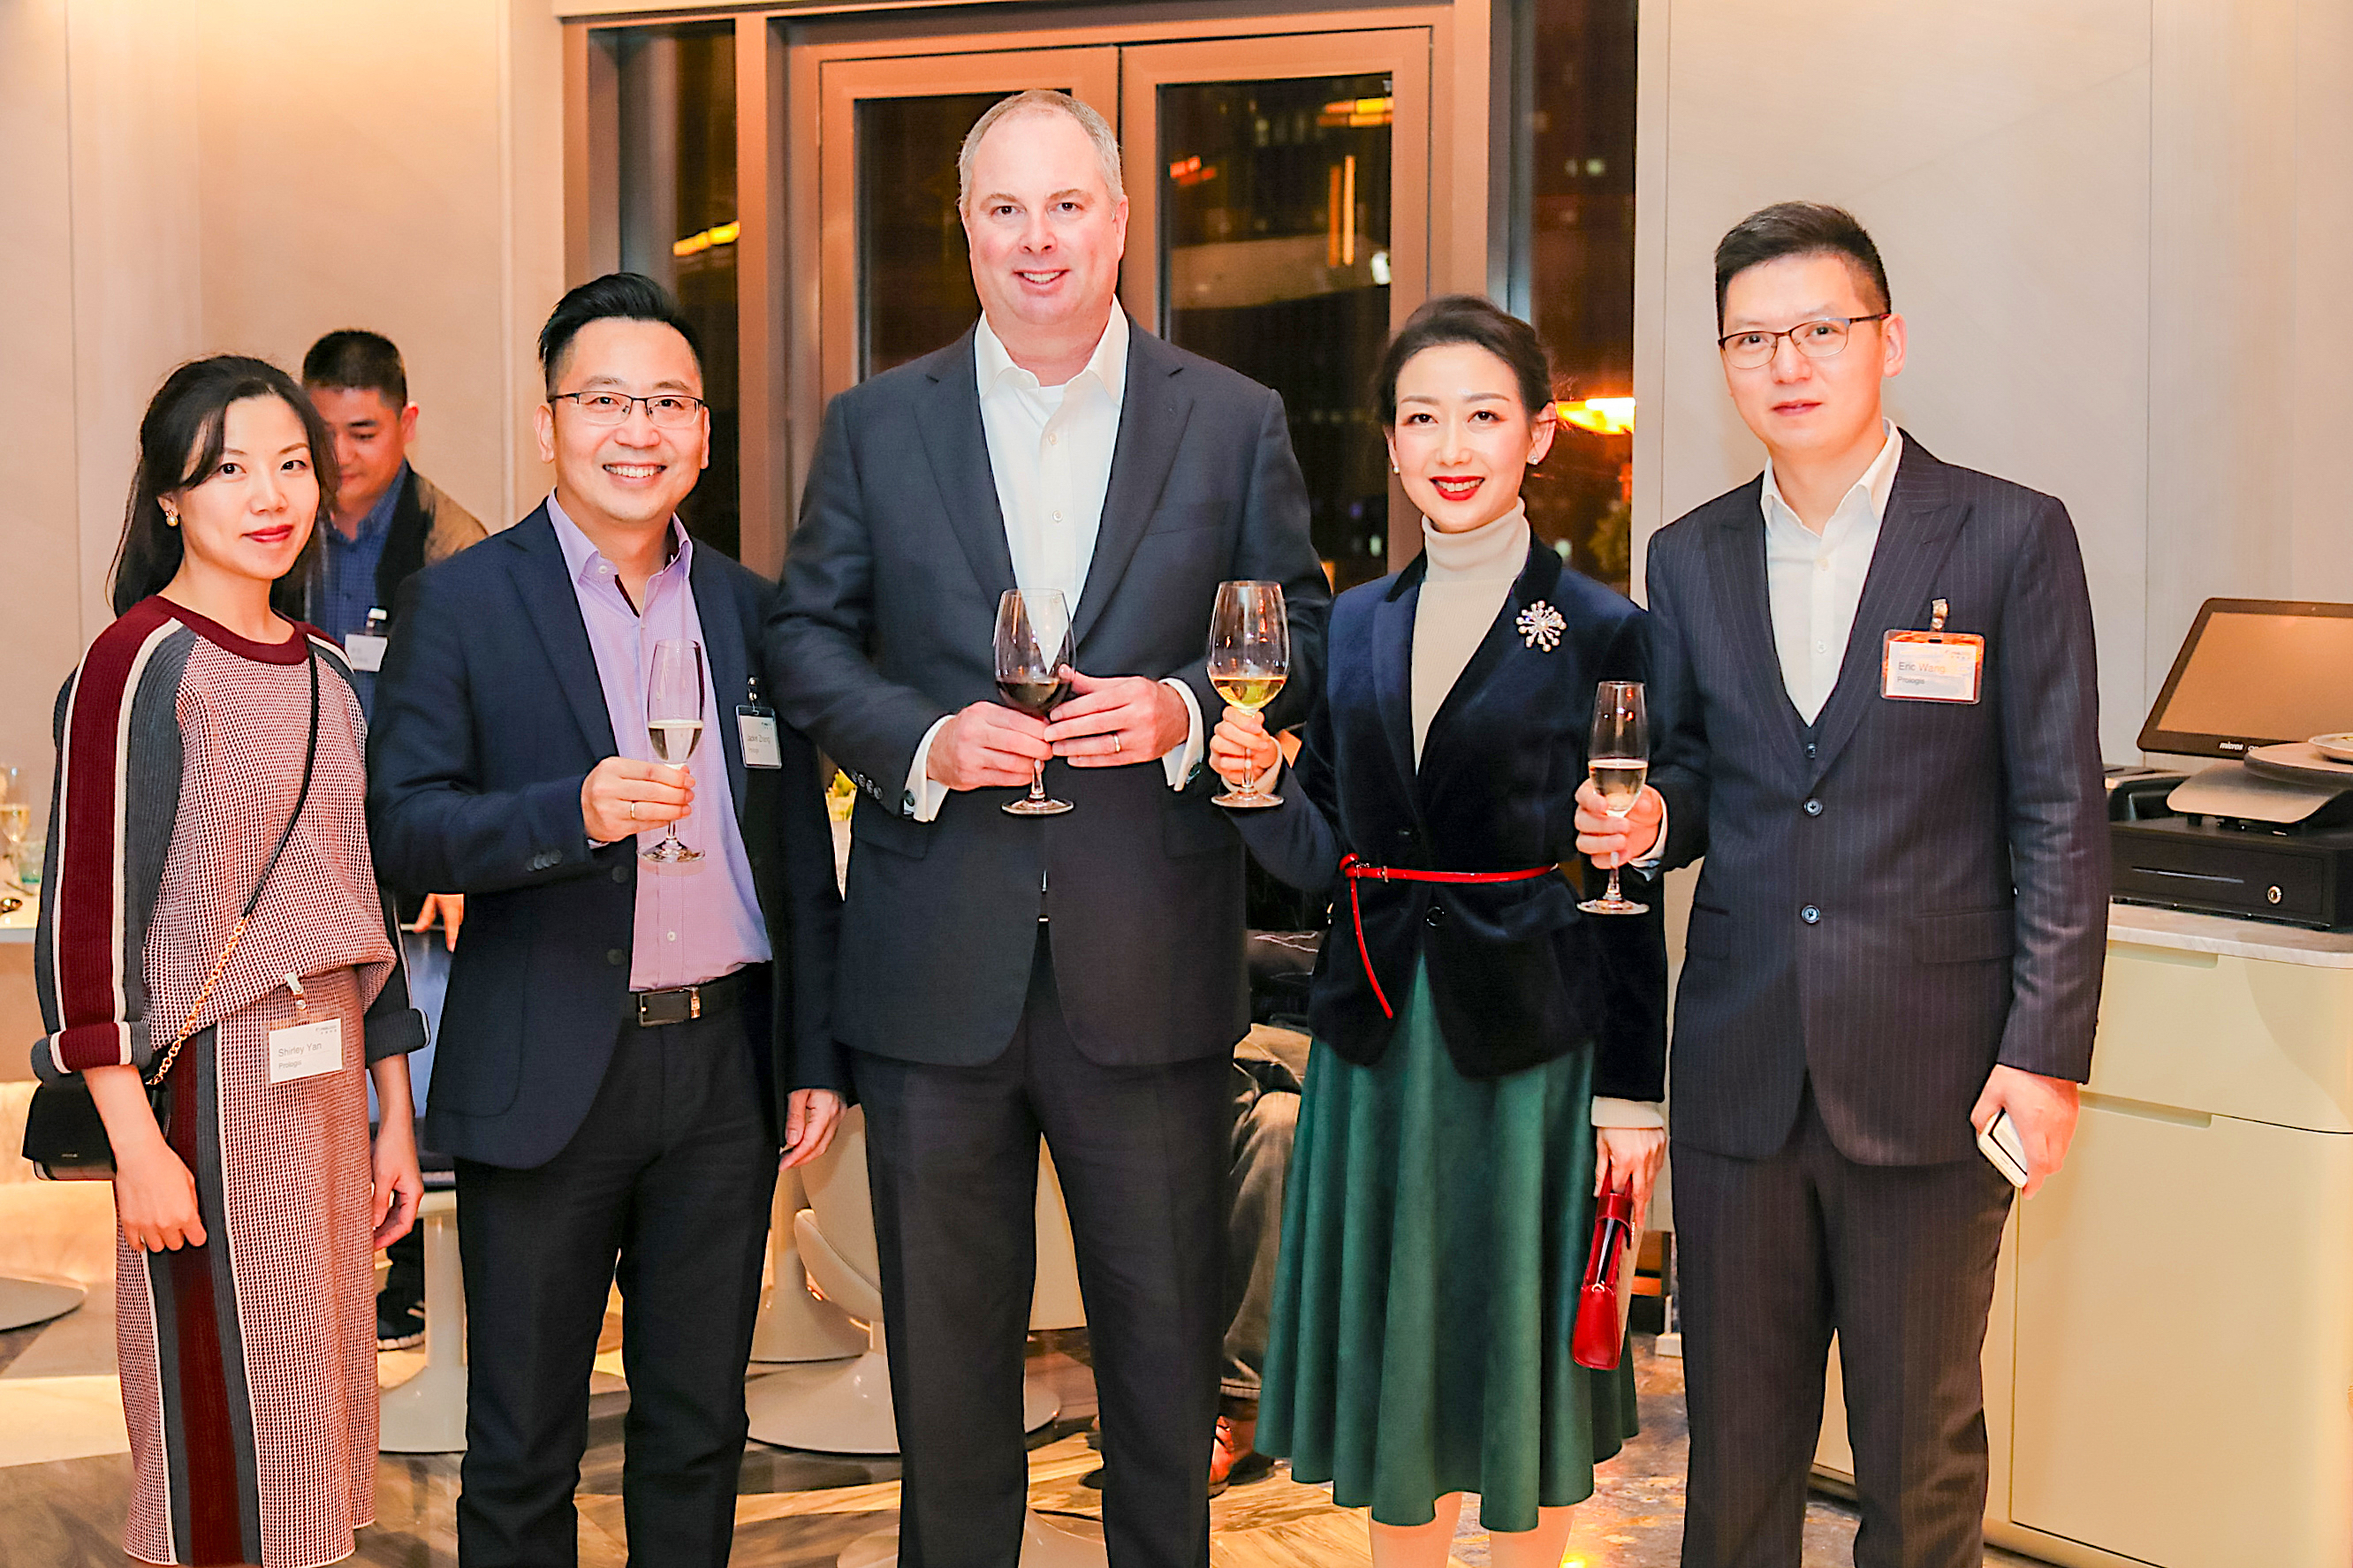 Prologis China President Ben Cornish greets guests to the Seventh Annual Customer Appreciation Event